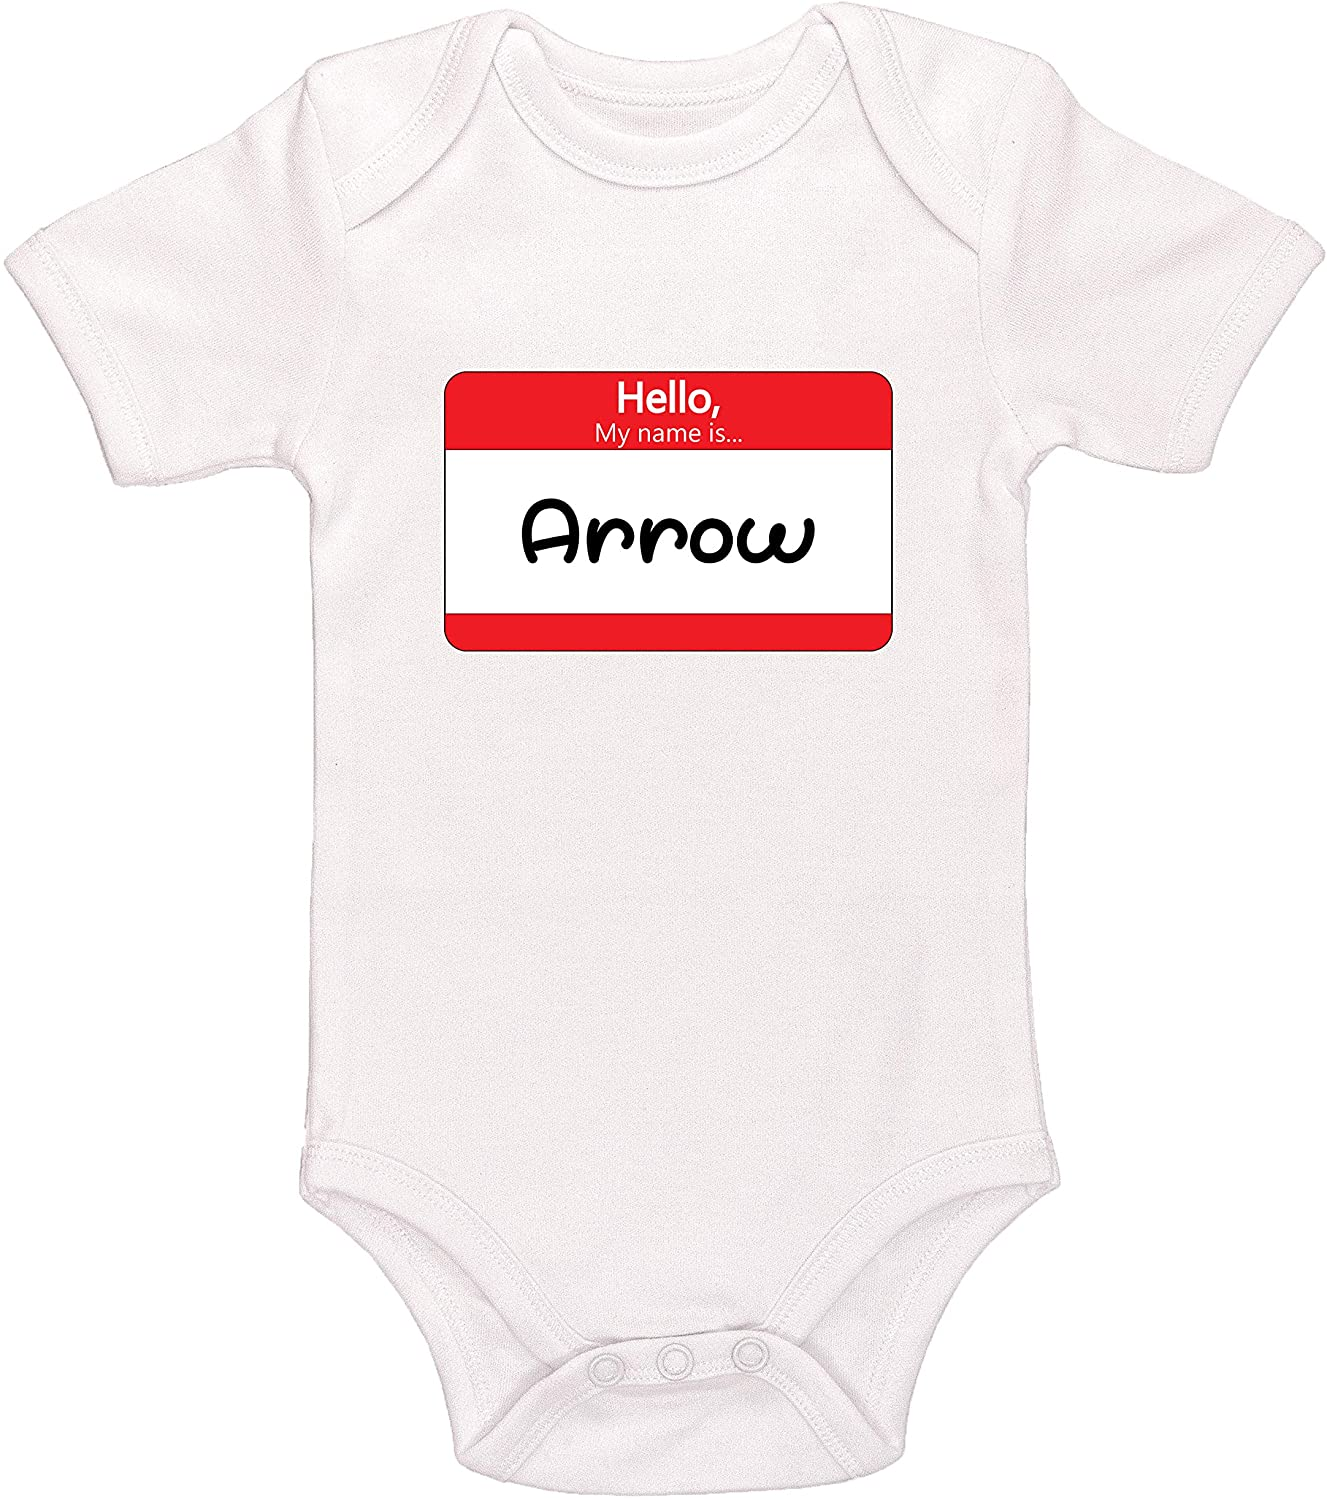 Kinacle Hello My Name is Arrow Personalized Baby Bodysuit